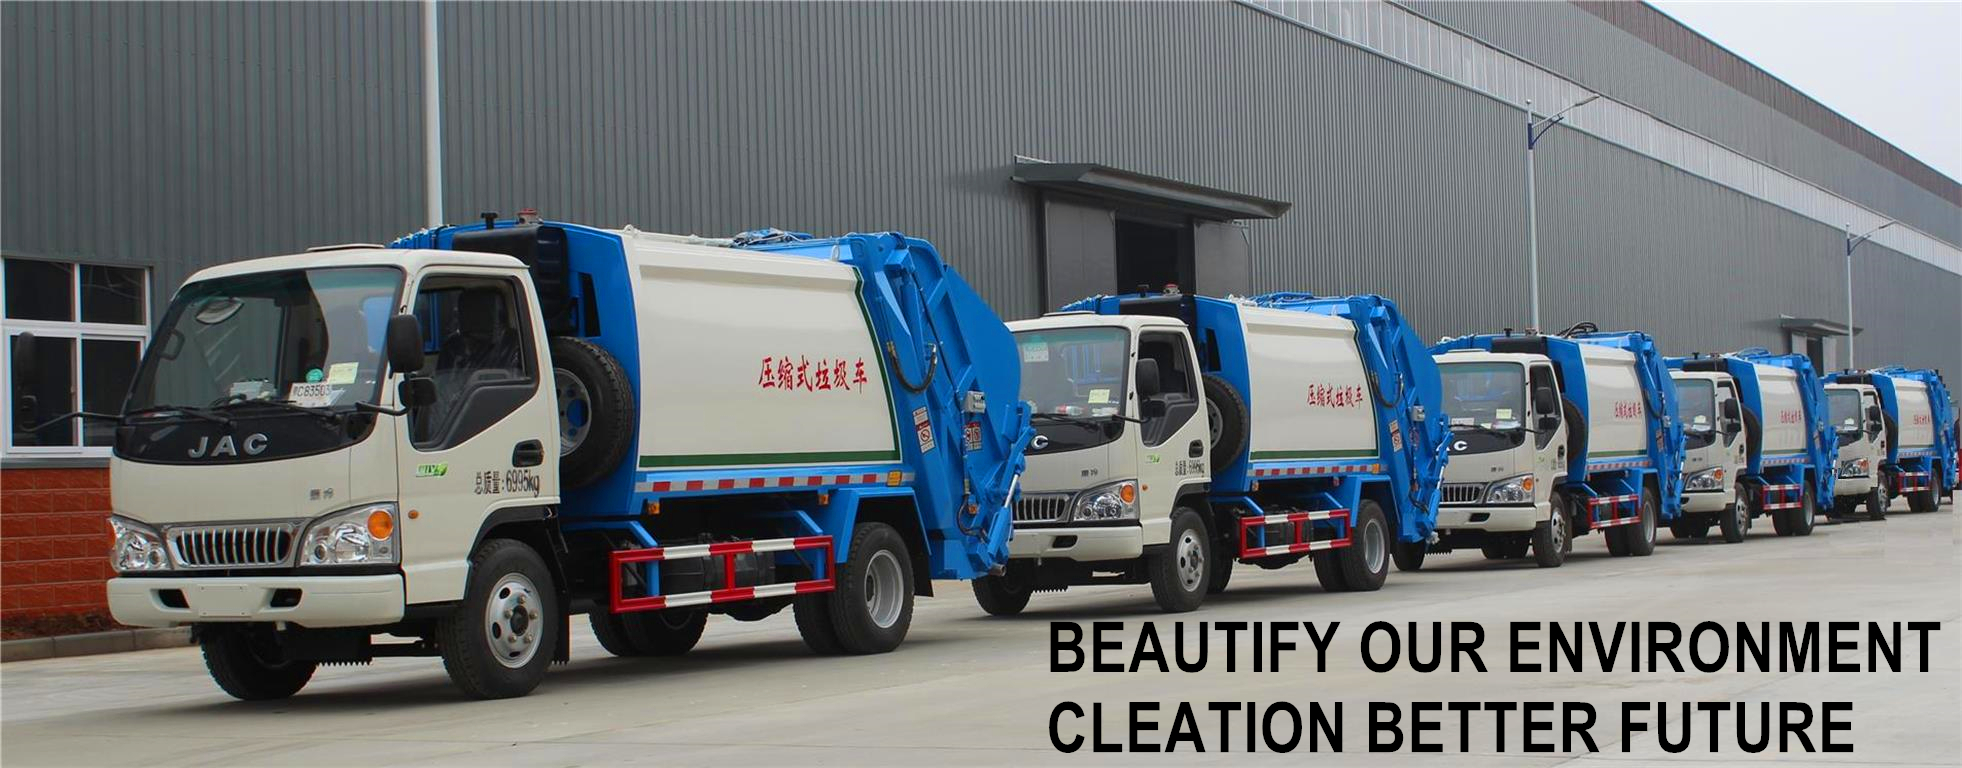 JAC trash compression trucks wholesale